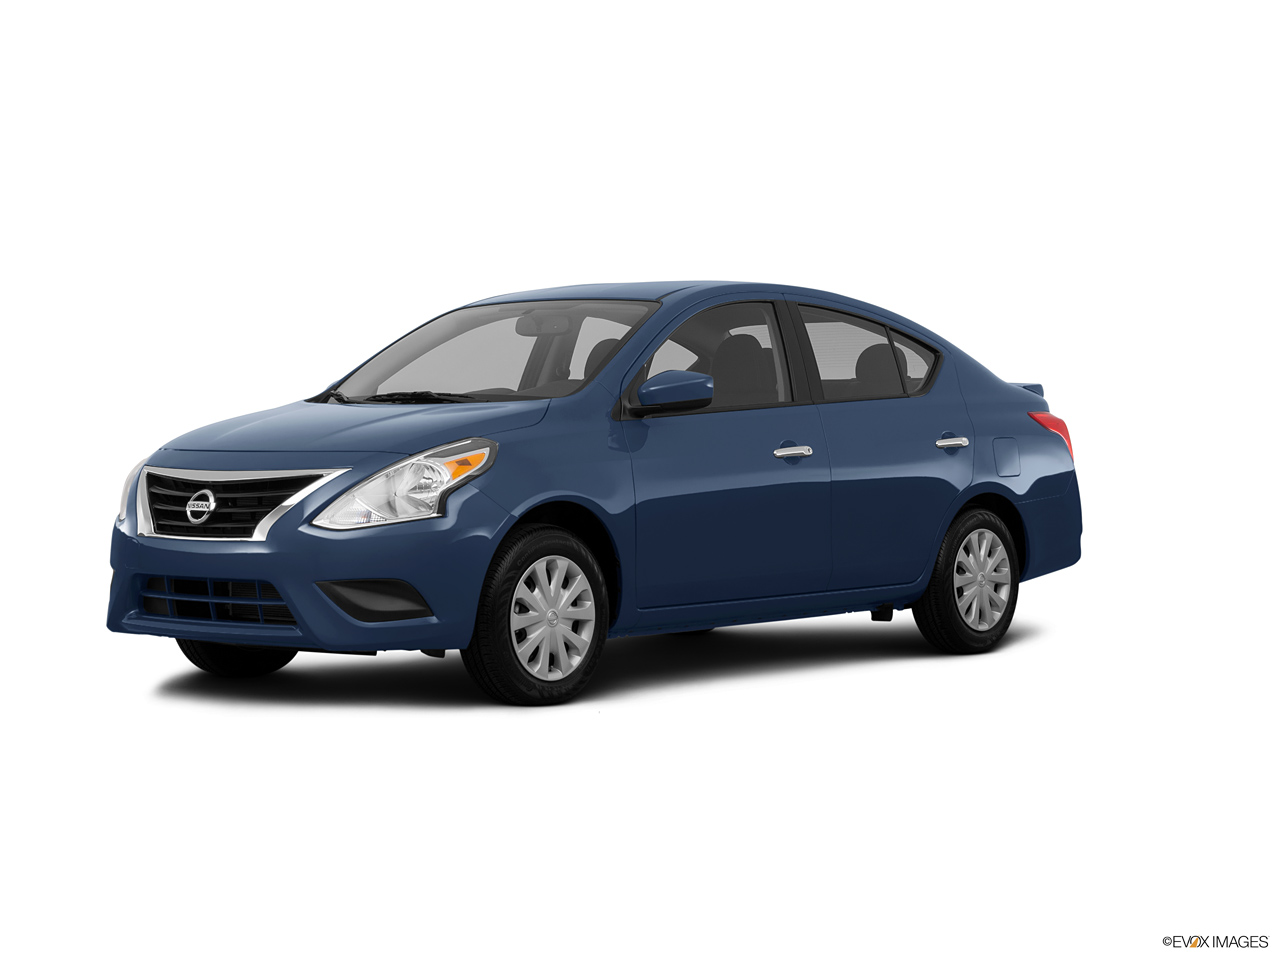 Car Pictures List For Nissan Sunny 2016 1 5l Sv Uae